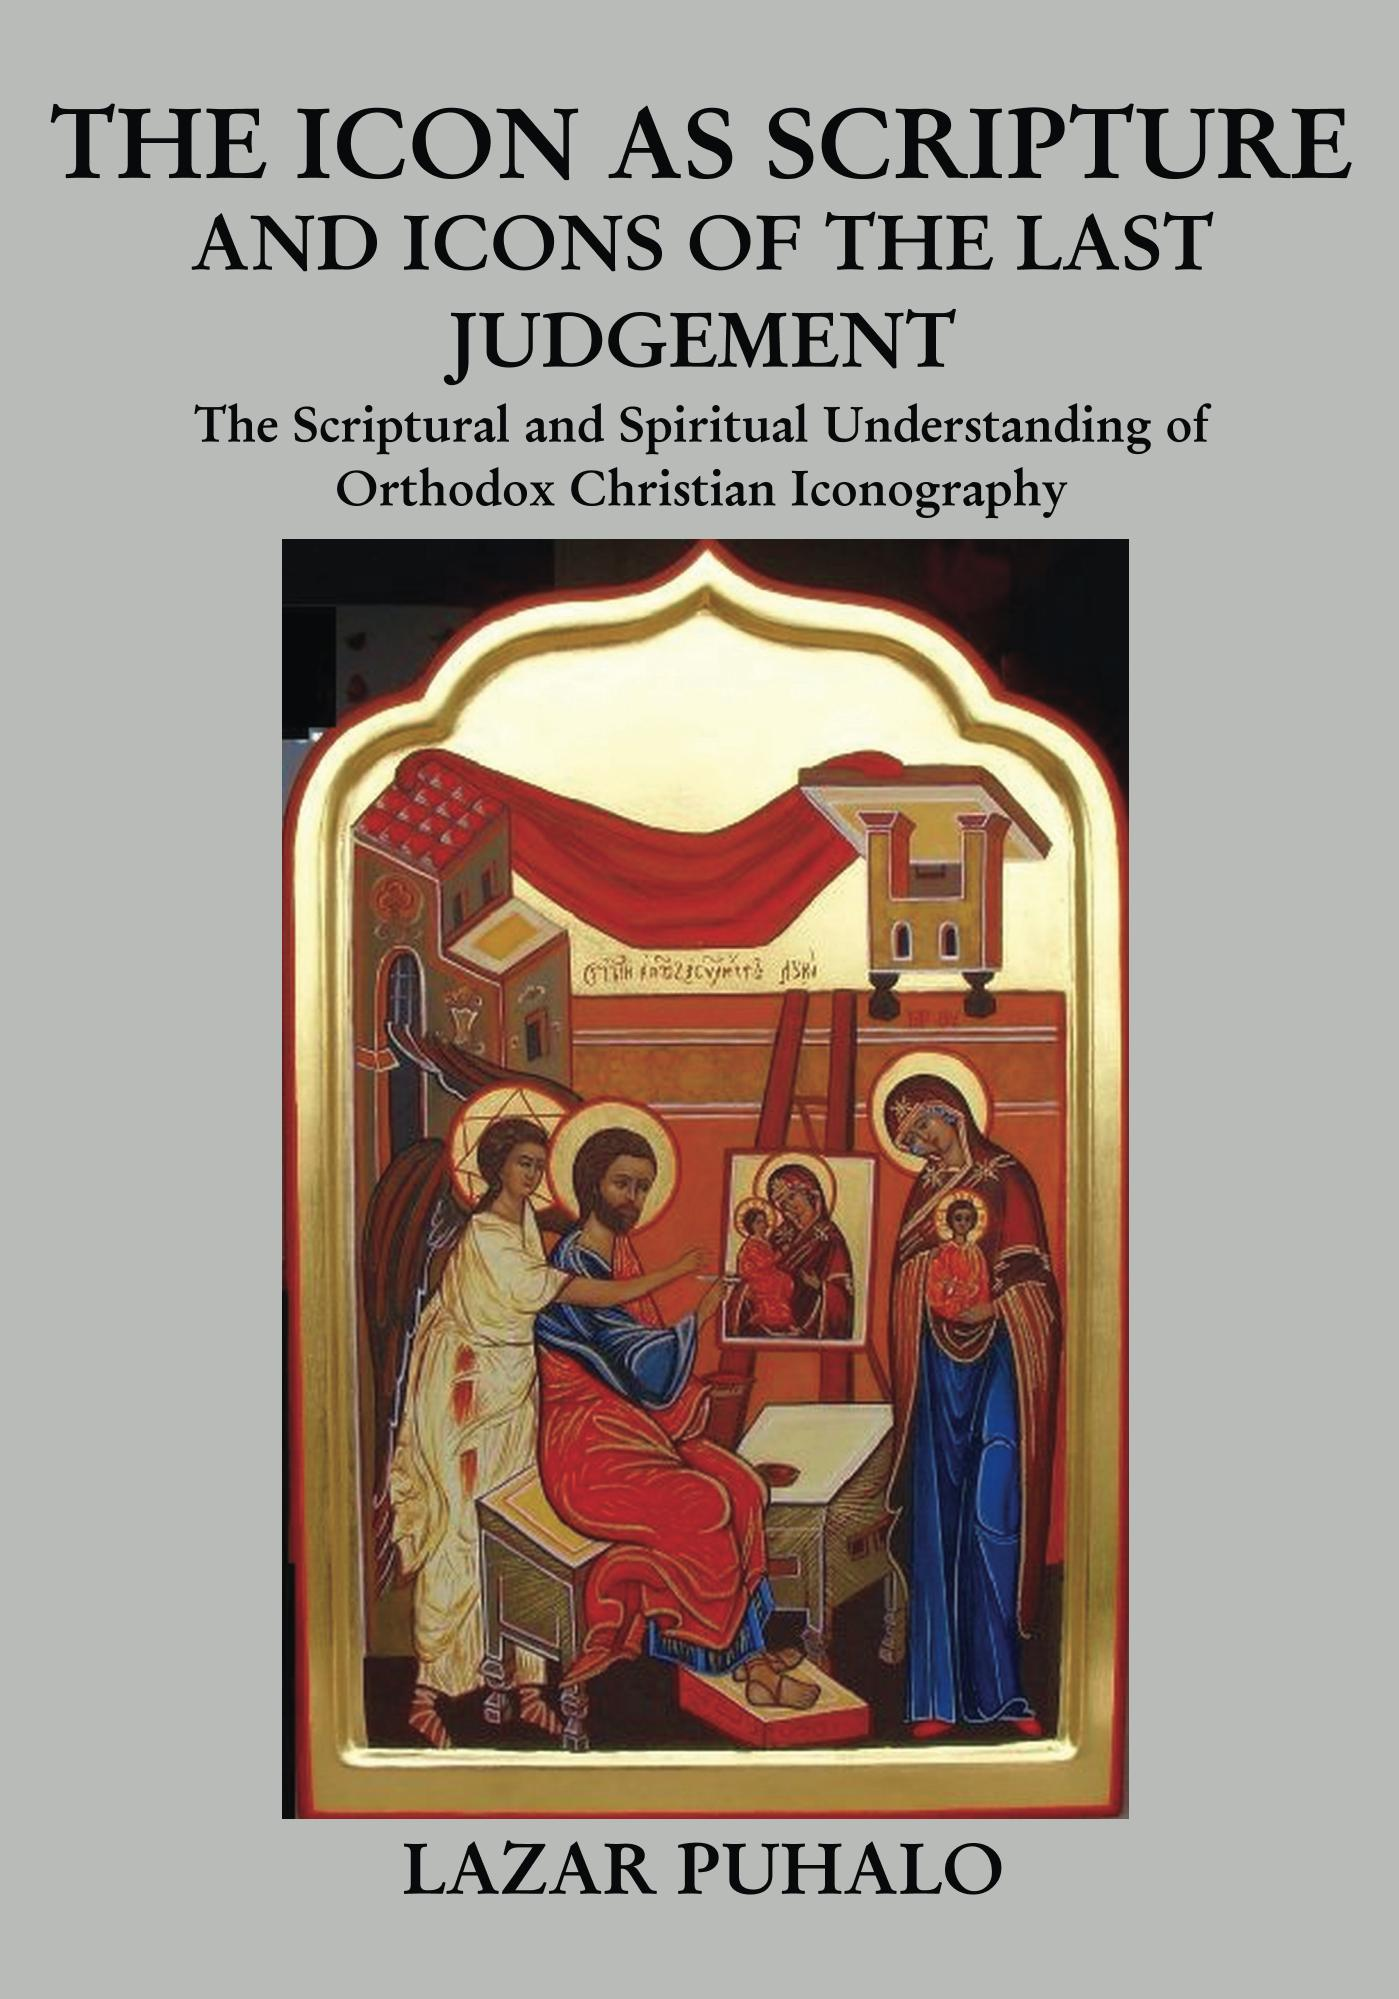 Free downloadable book with Orthodox content